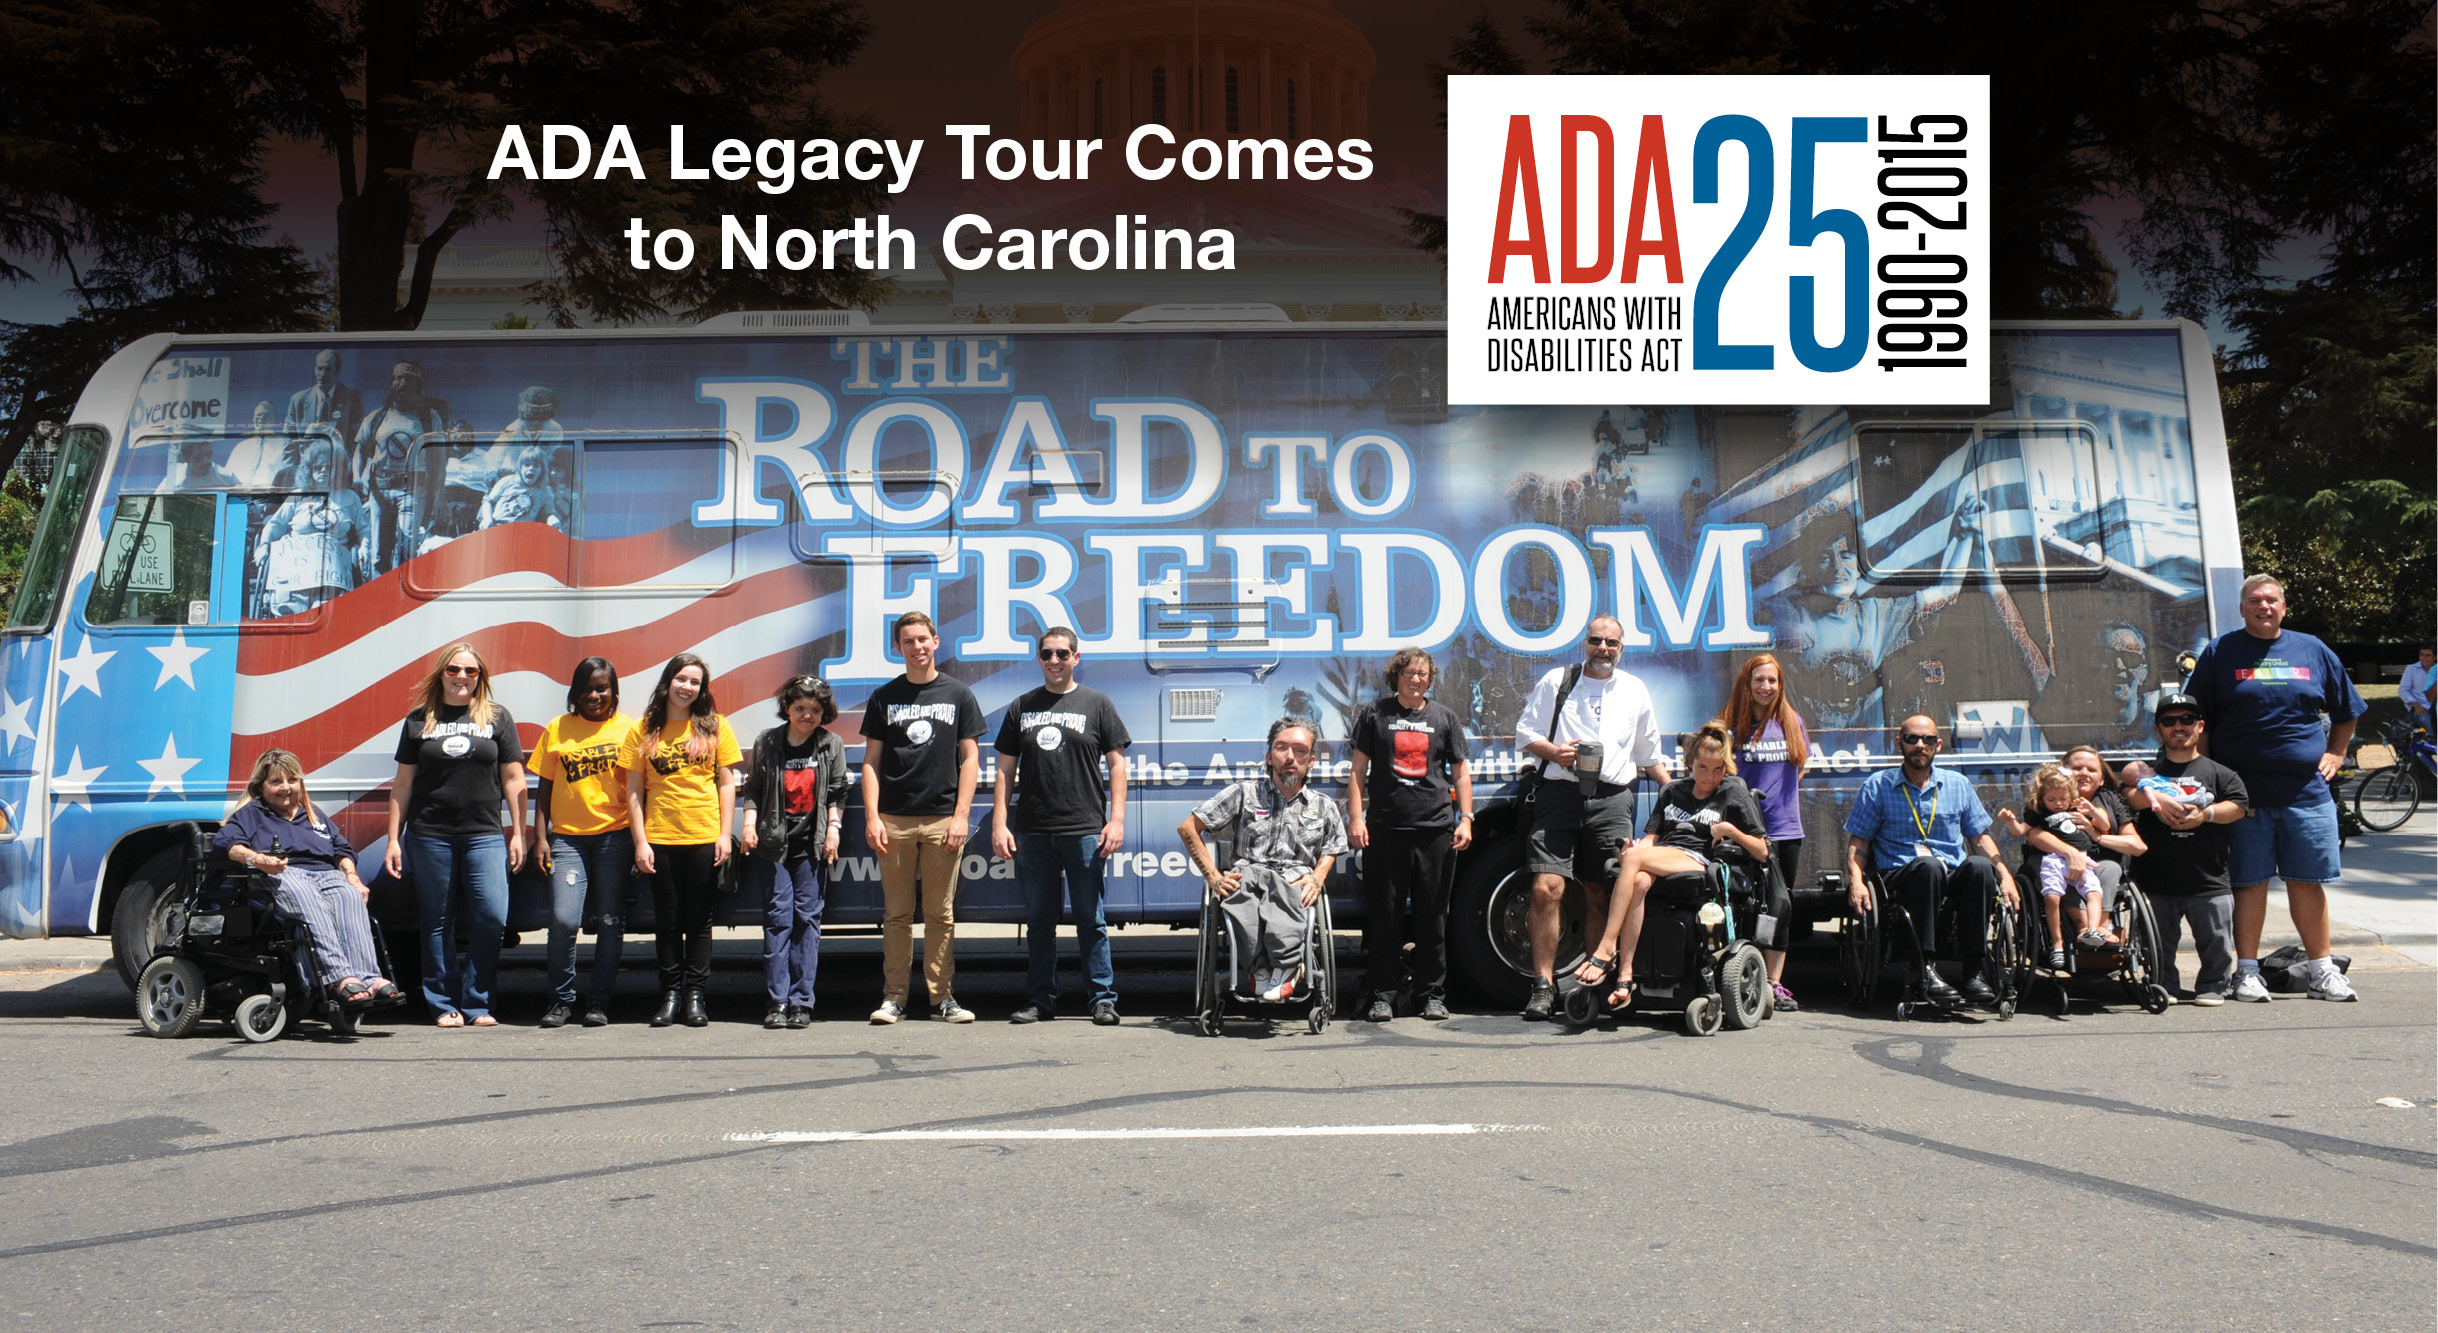 ADA Legacy Tour Comes to North Carolina